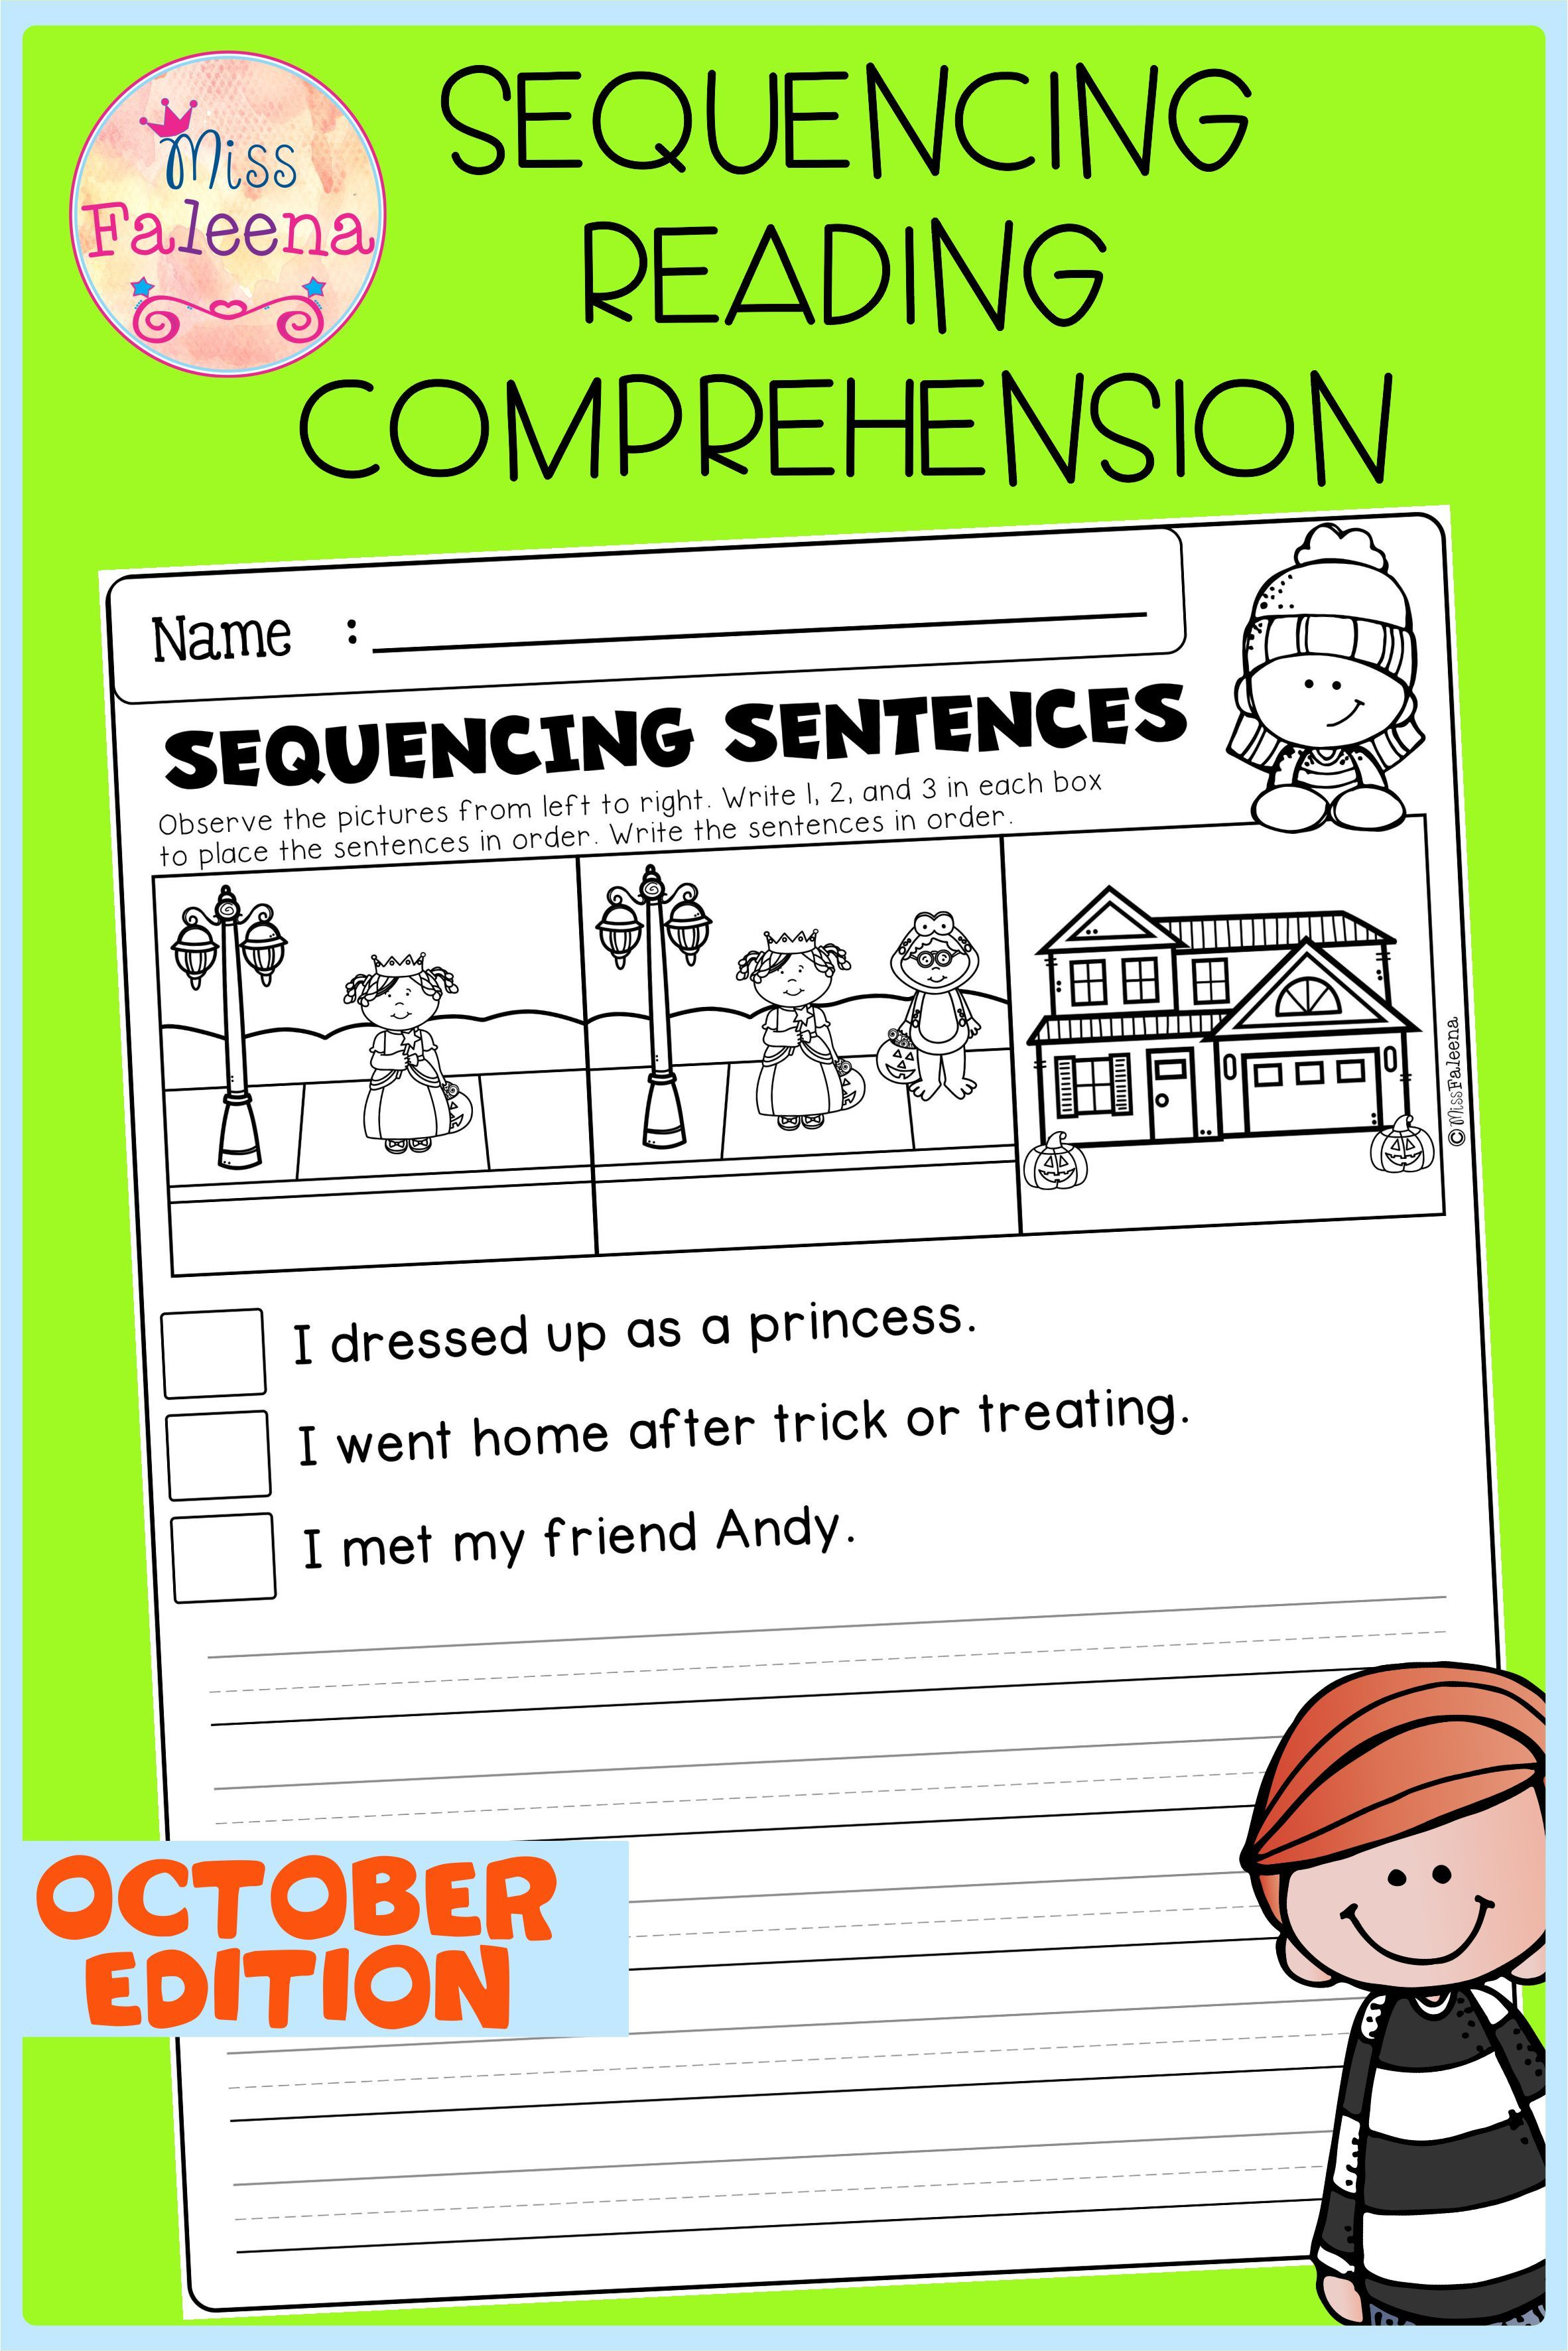 October Sequencing Reading Comprehension Di